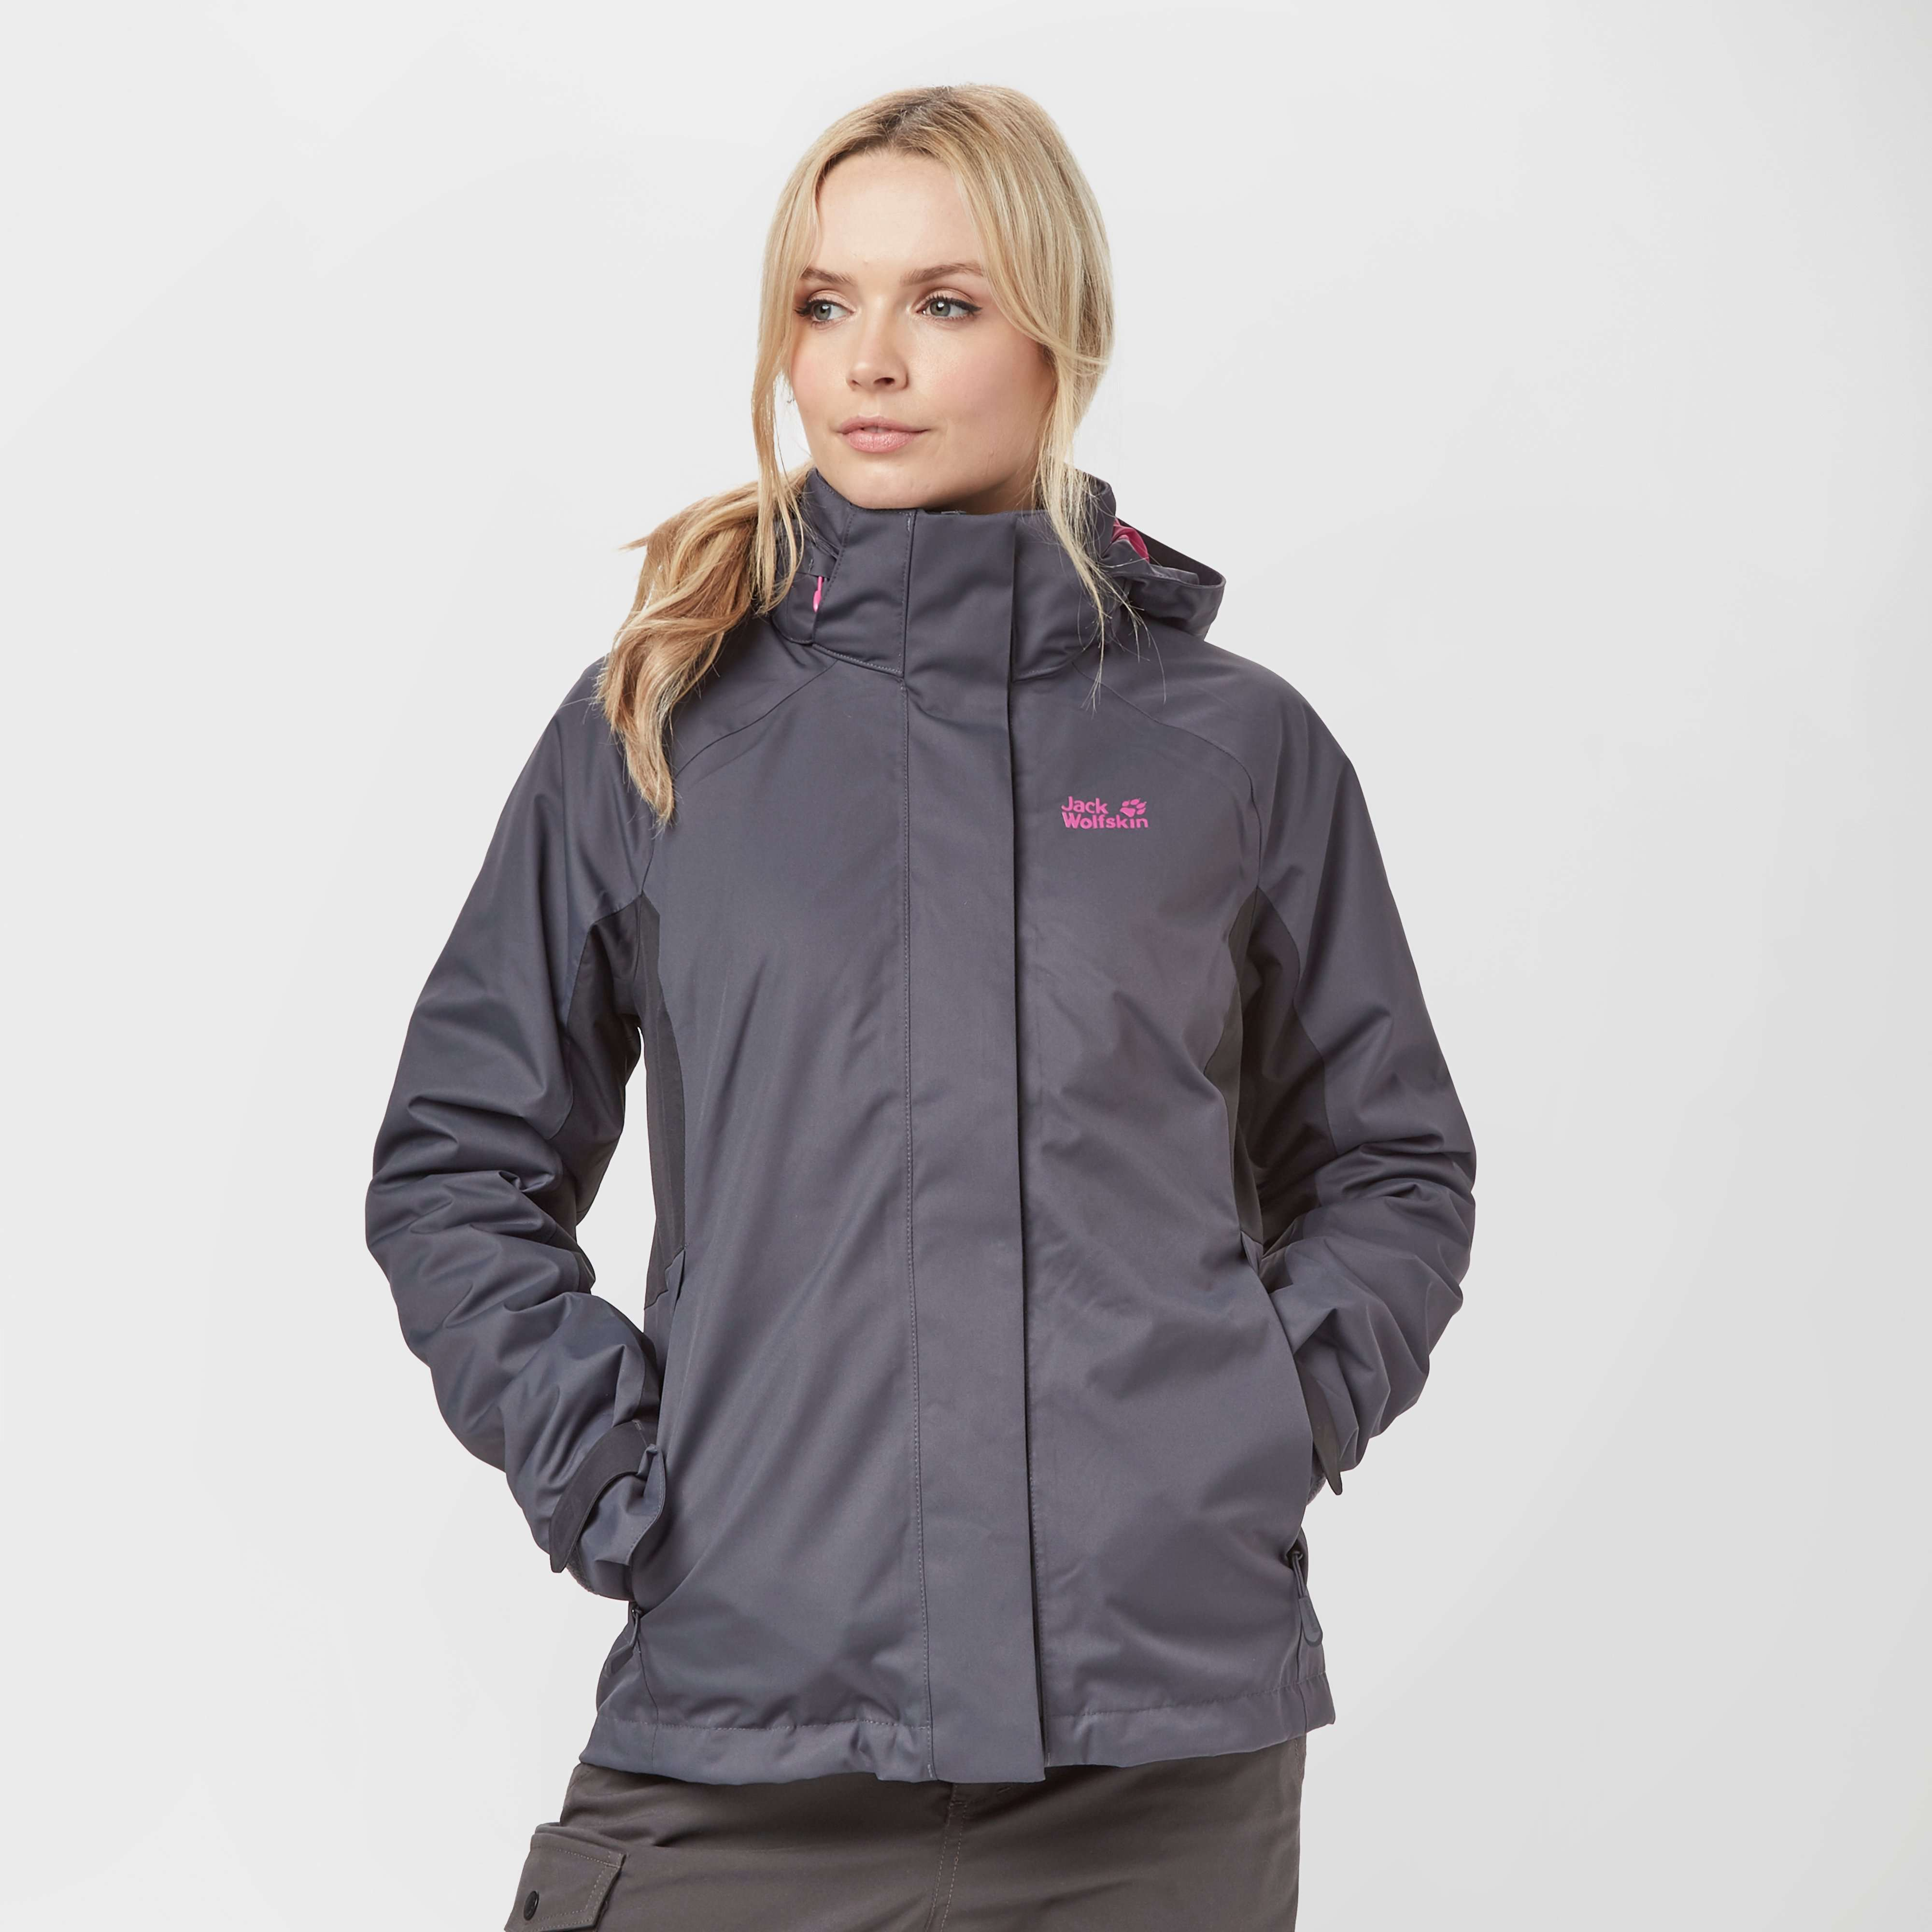 JACK WOLFSKIN Women's Iceland Journey 3 in 1 Jacket